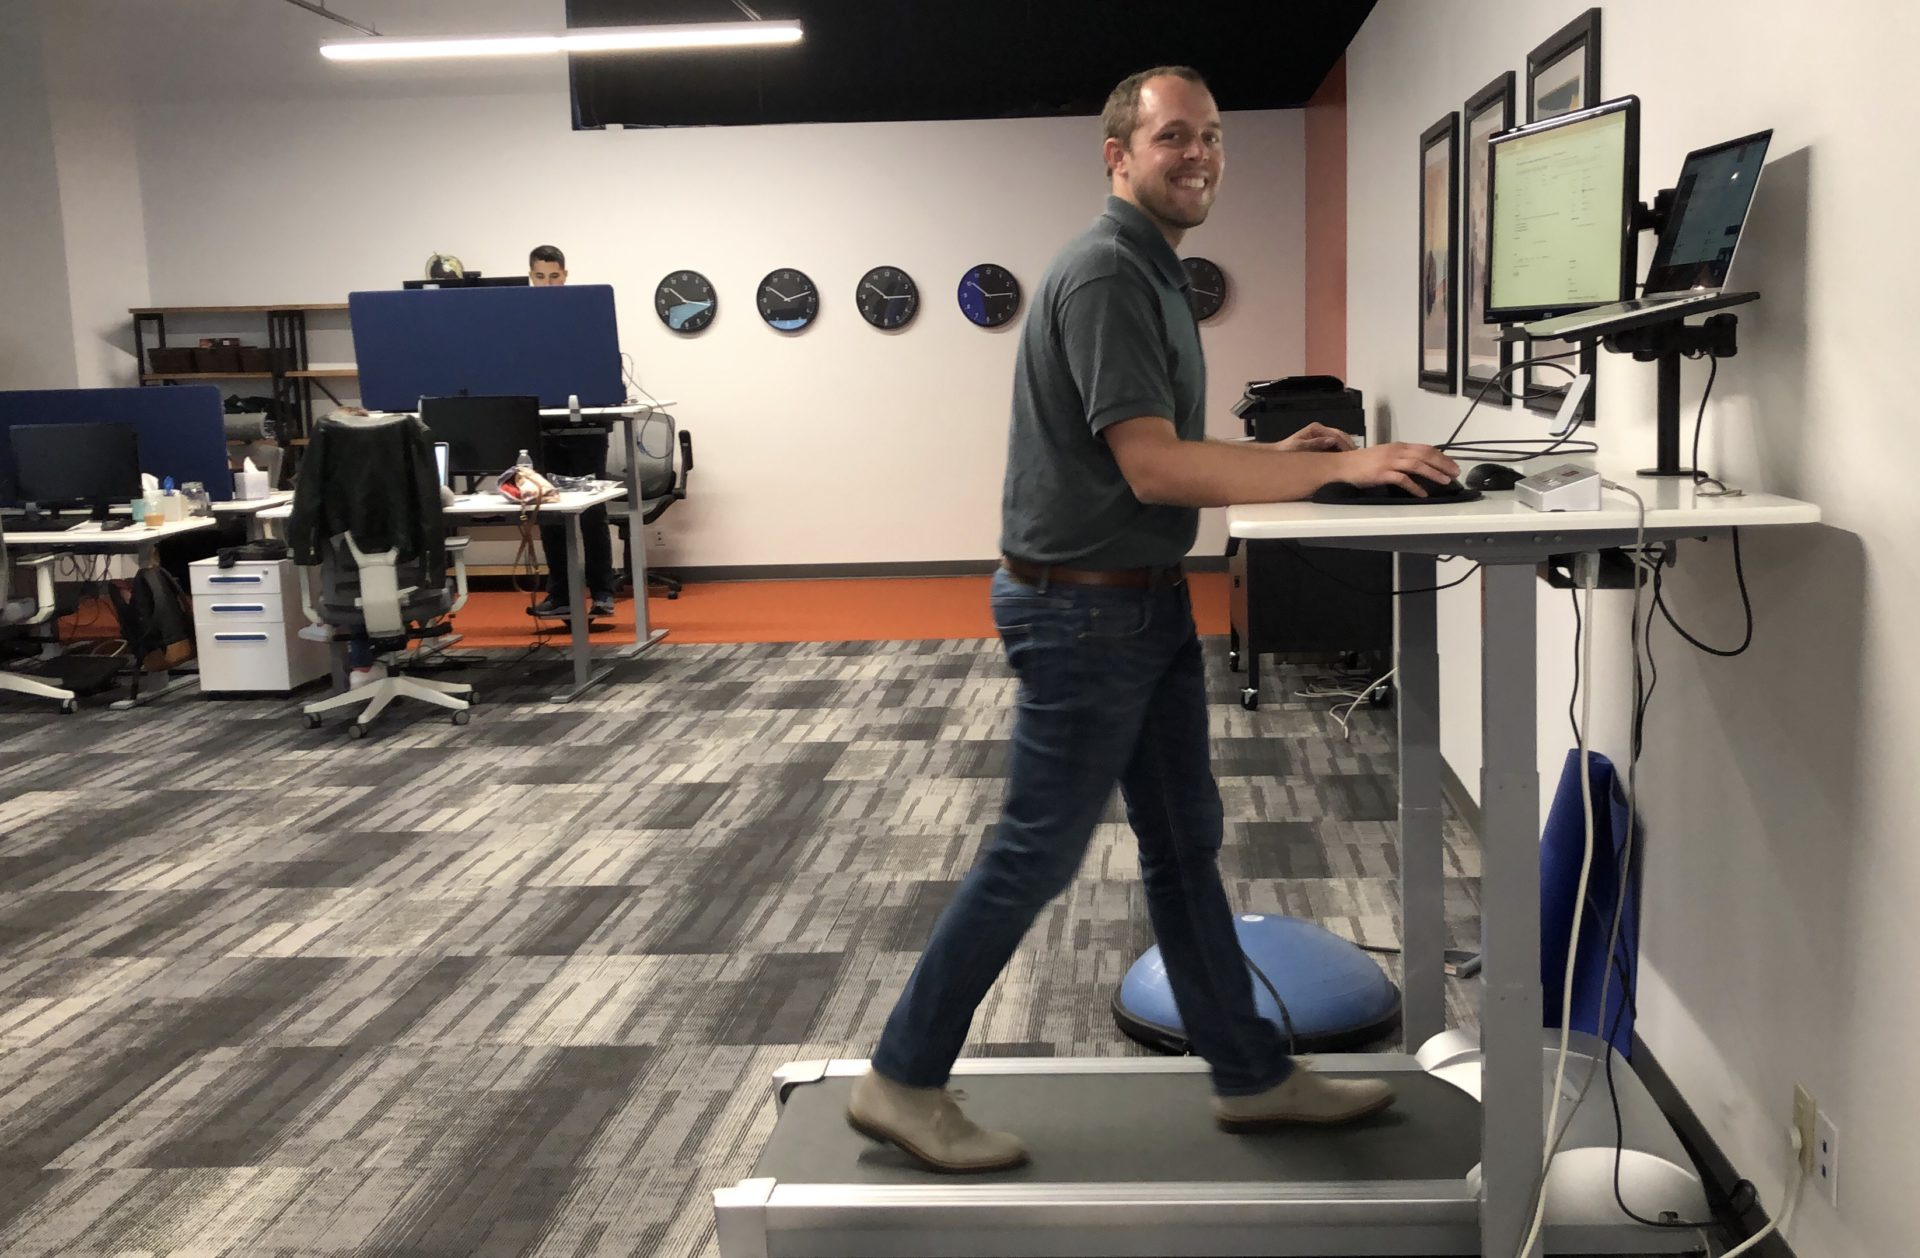 Cloudbeds San Diego headquarters have great perks for their employees